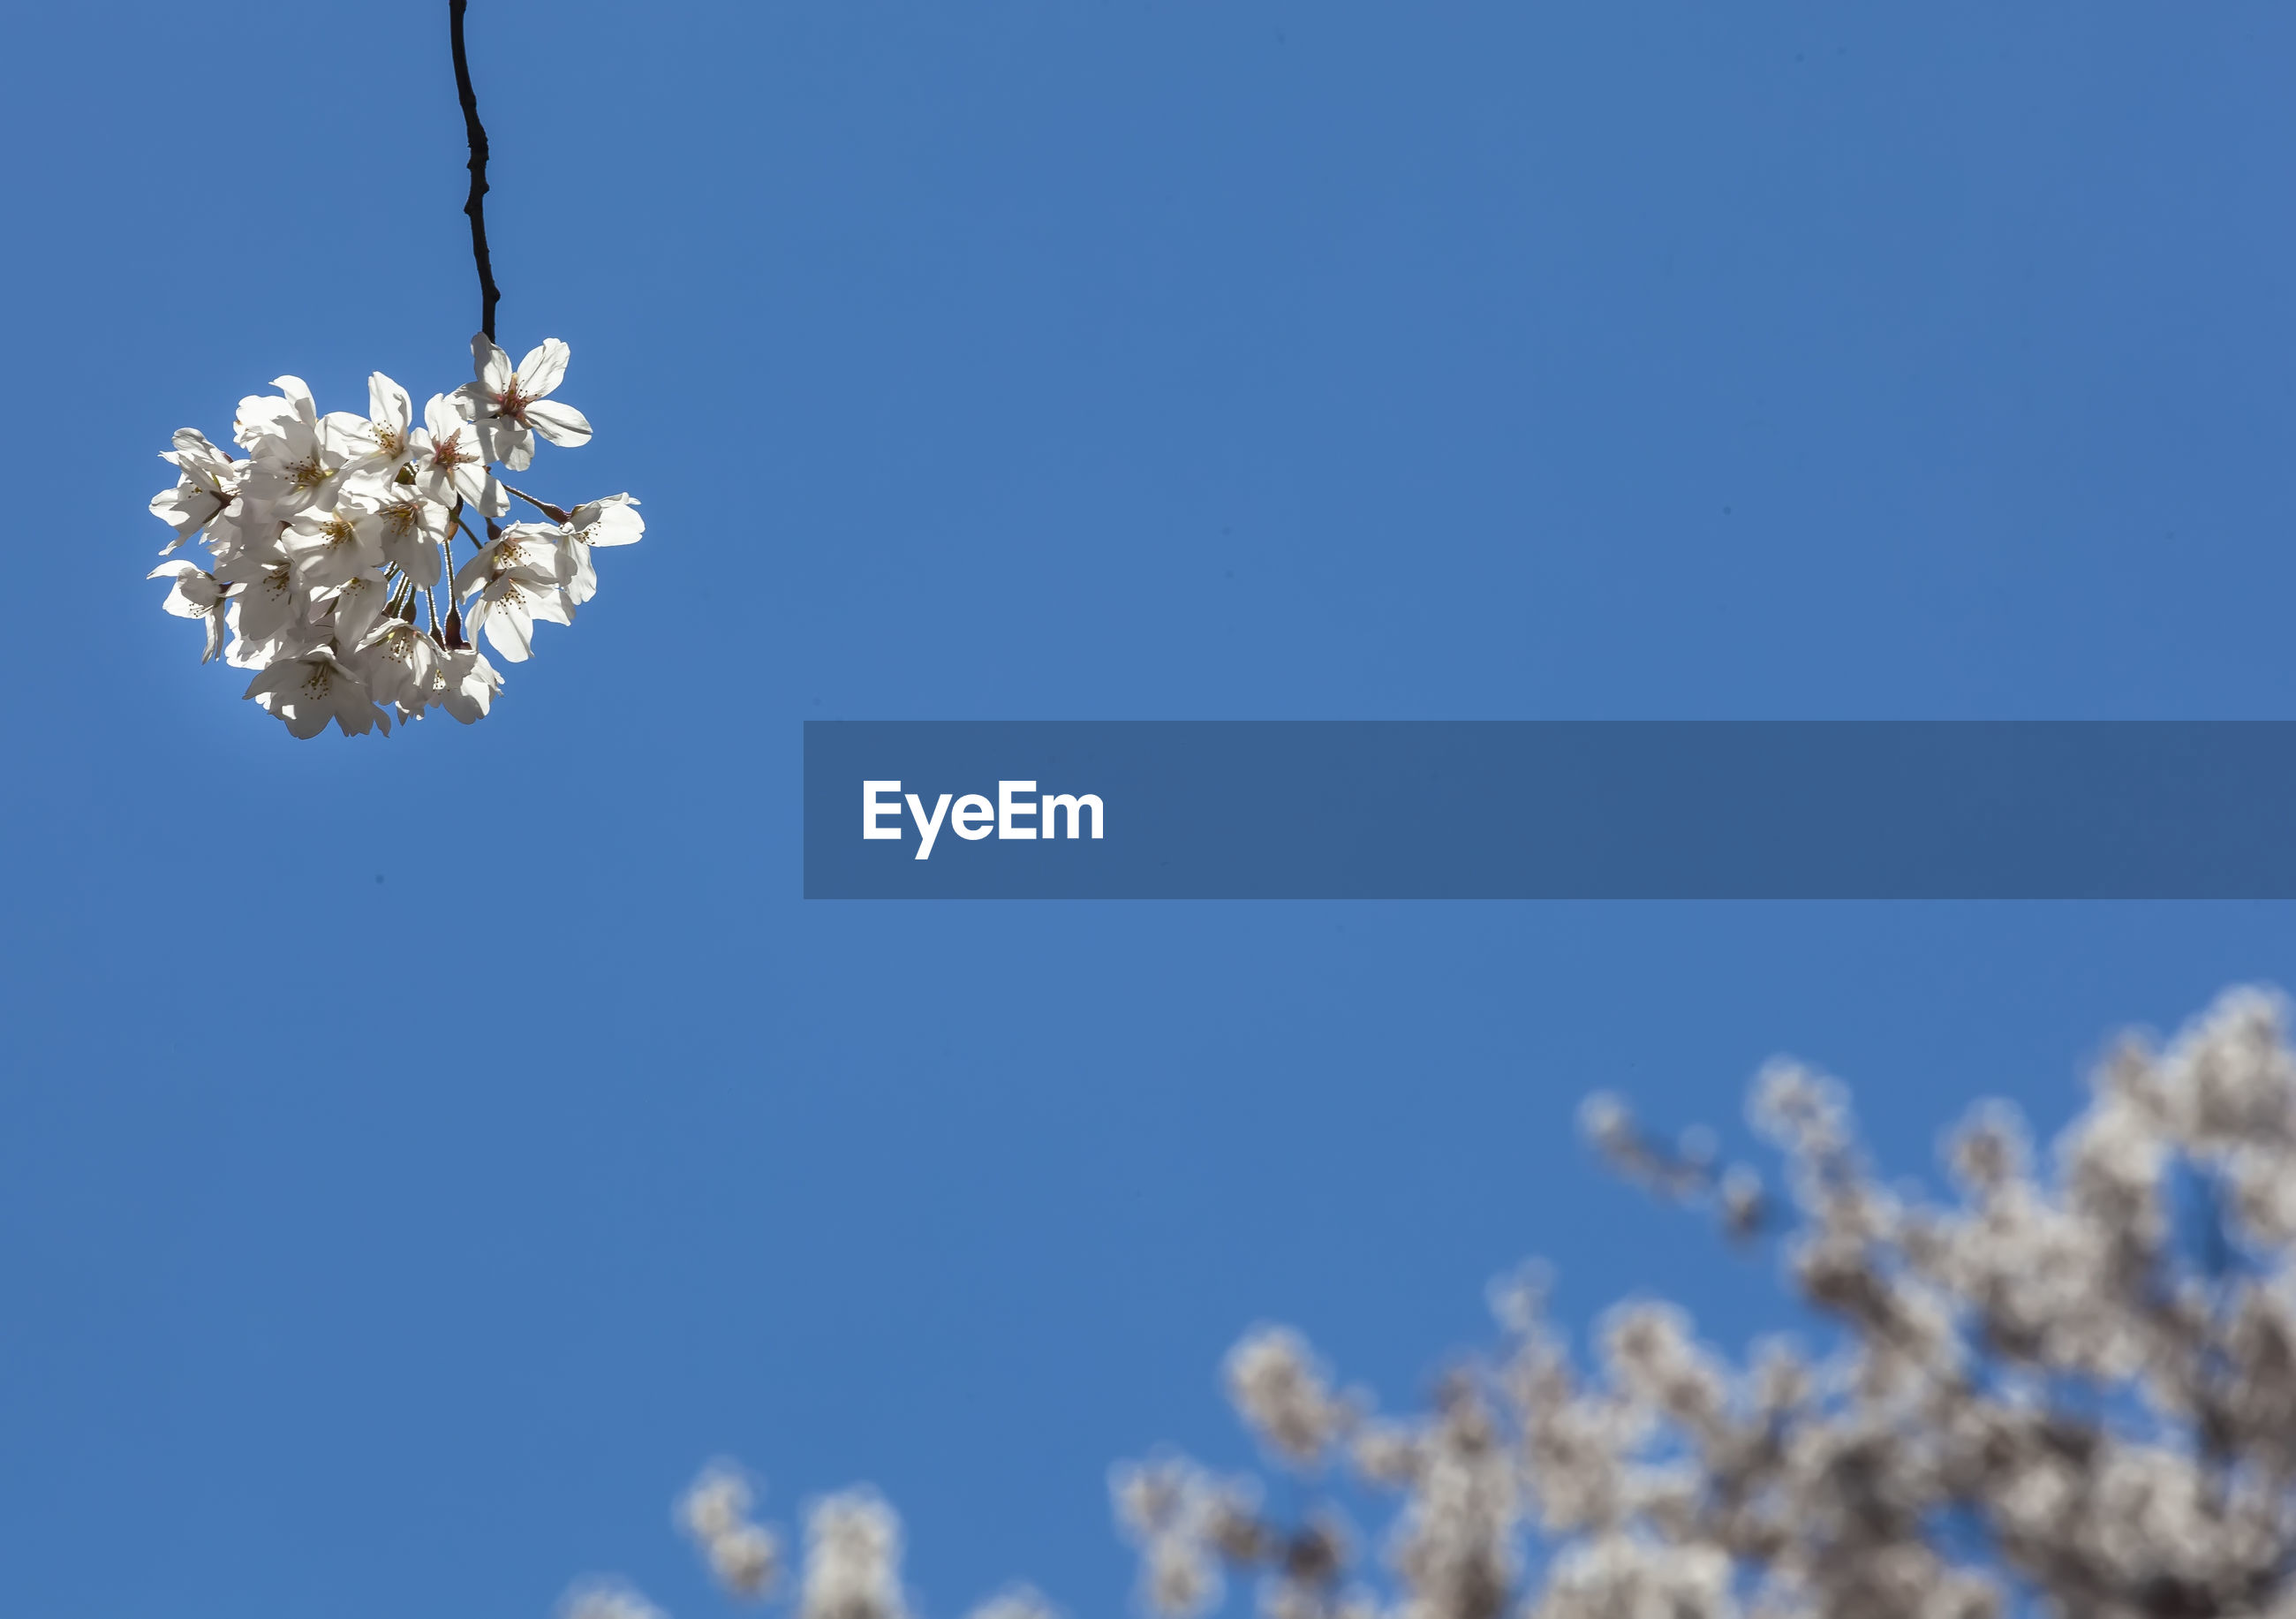 LOW ANGLE VIEW OF CHERRY BLOSSOMS AGAINST BLUE SKY